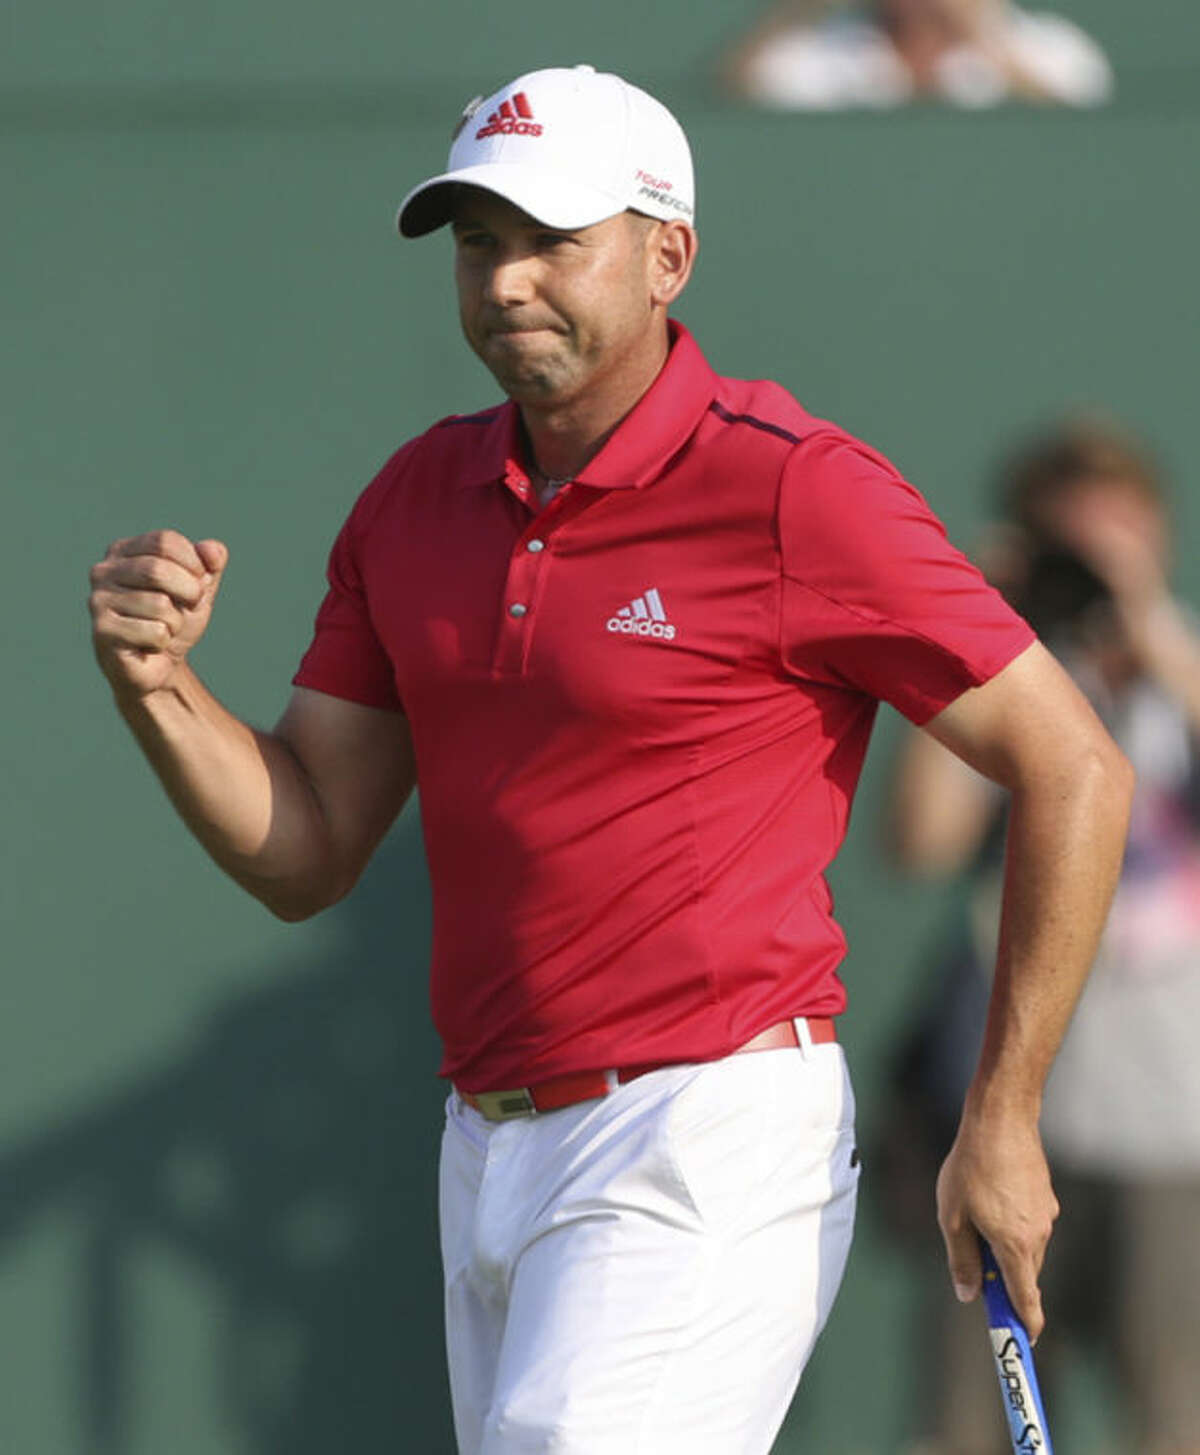 Sergio Garcia of Spain celebrates on the 18th green after finishing his round on the second day of the British Open Golf championship at the Royal Liverpool golf club, Hoylake, England, Friday July 18, 2014. (AP Photo/Peter Morrison)